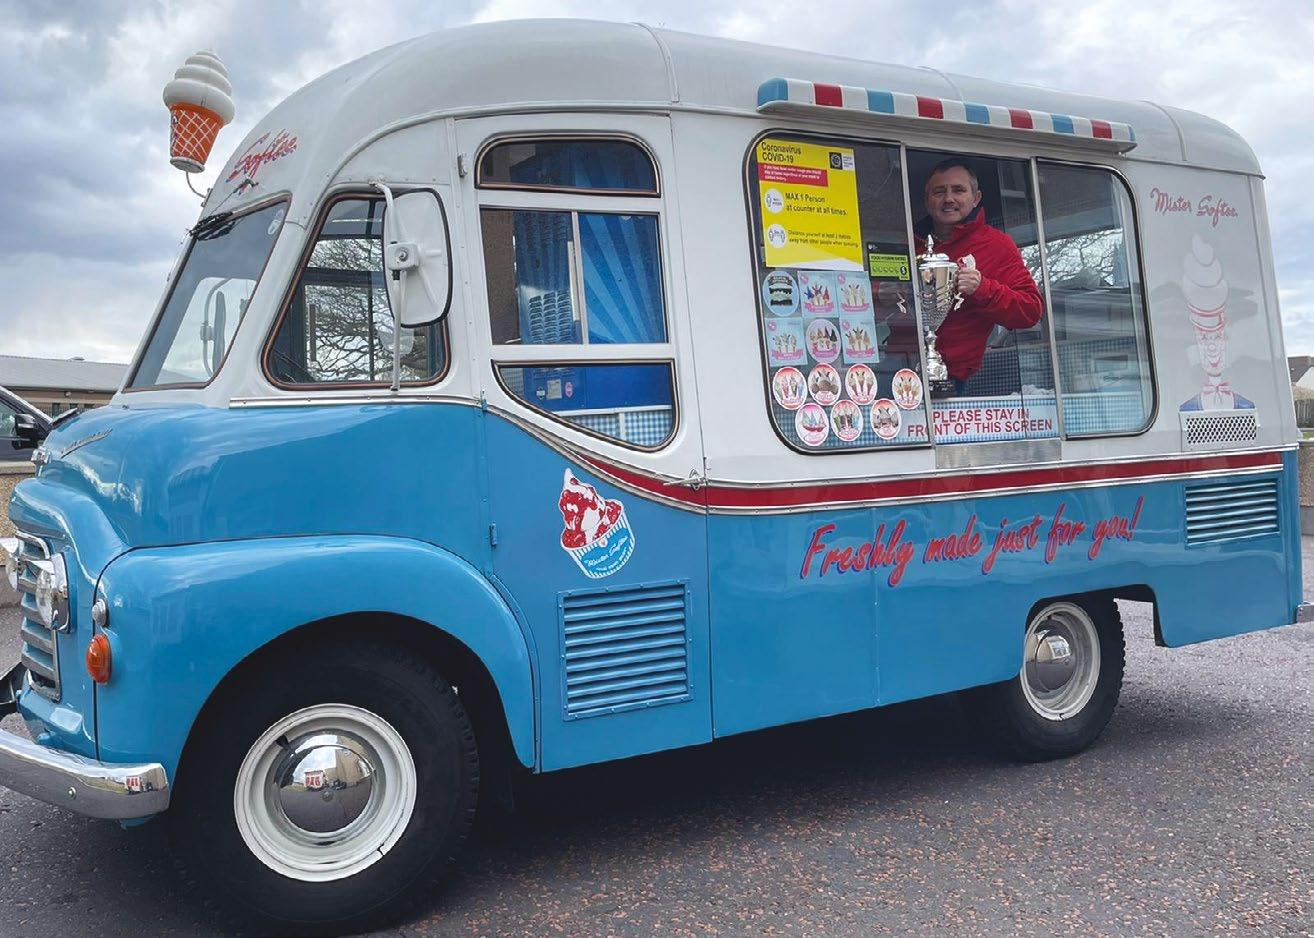 Page 13 of First Person from Northern Ireland Wins Ice Cream Van of the Year